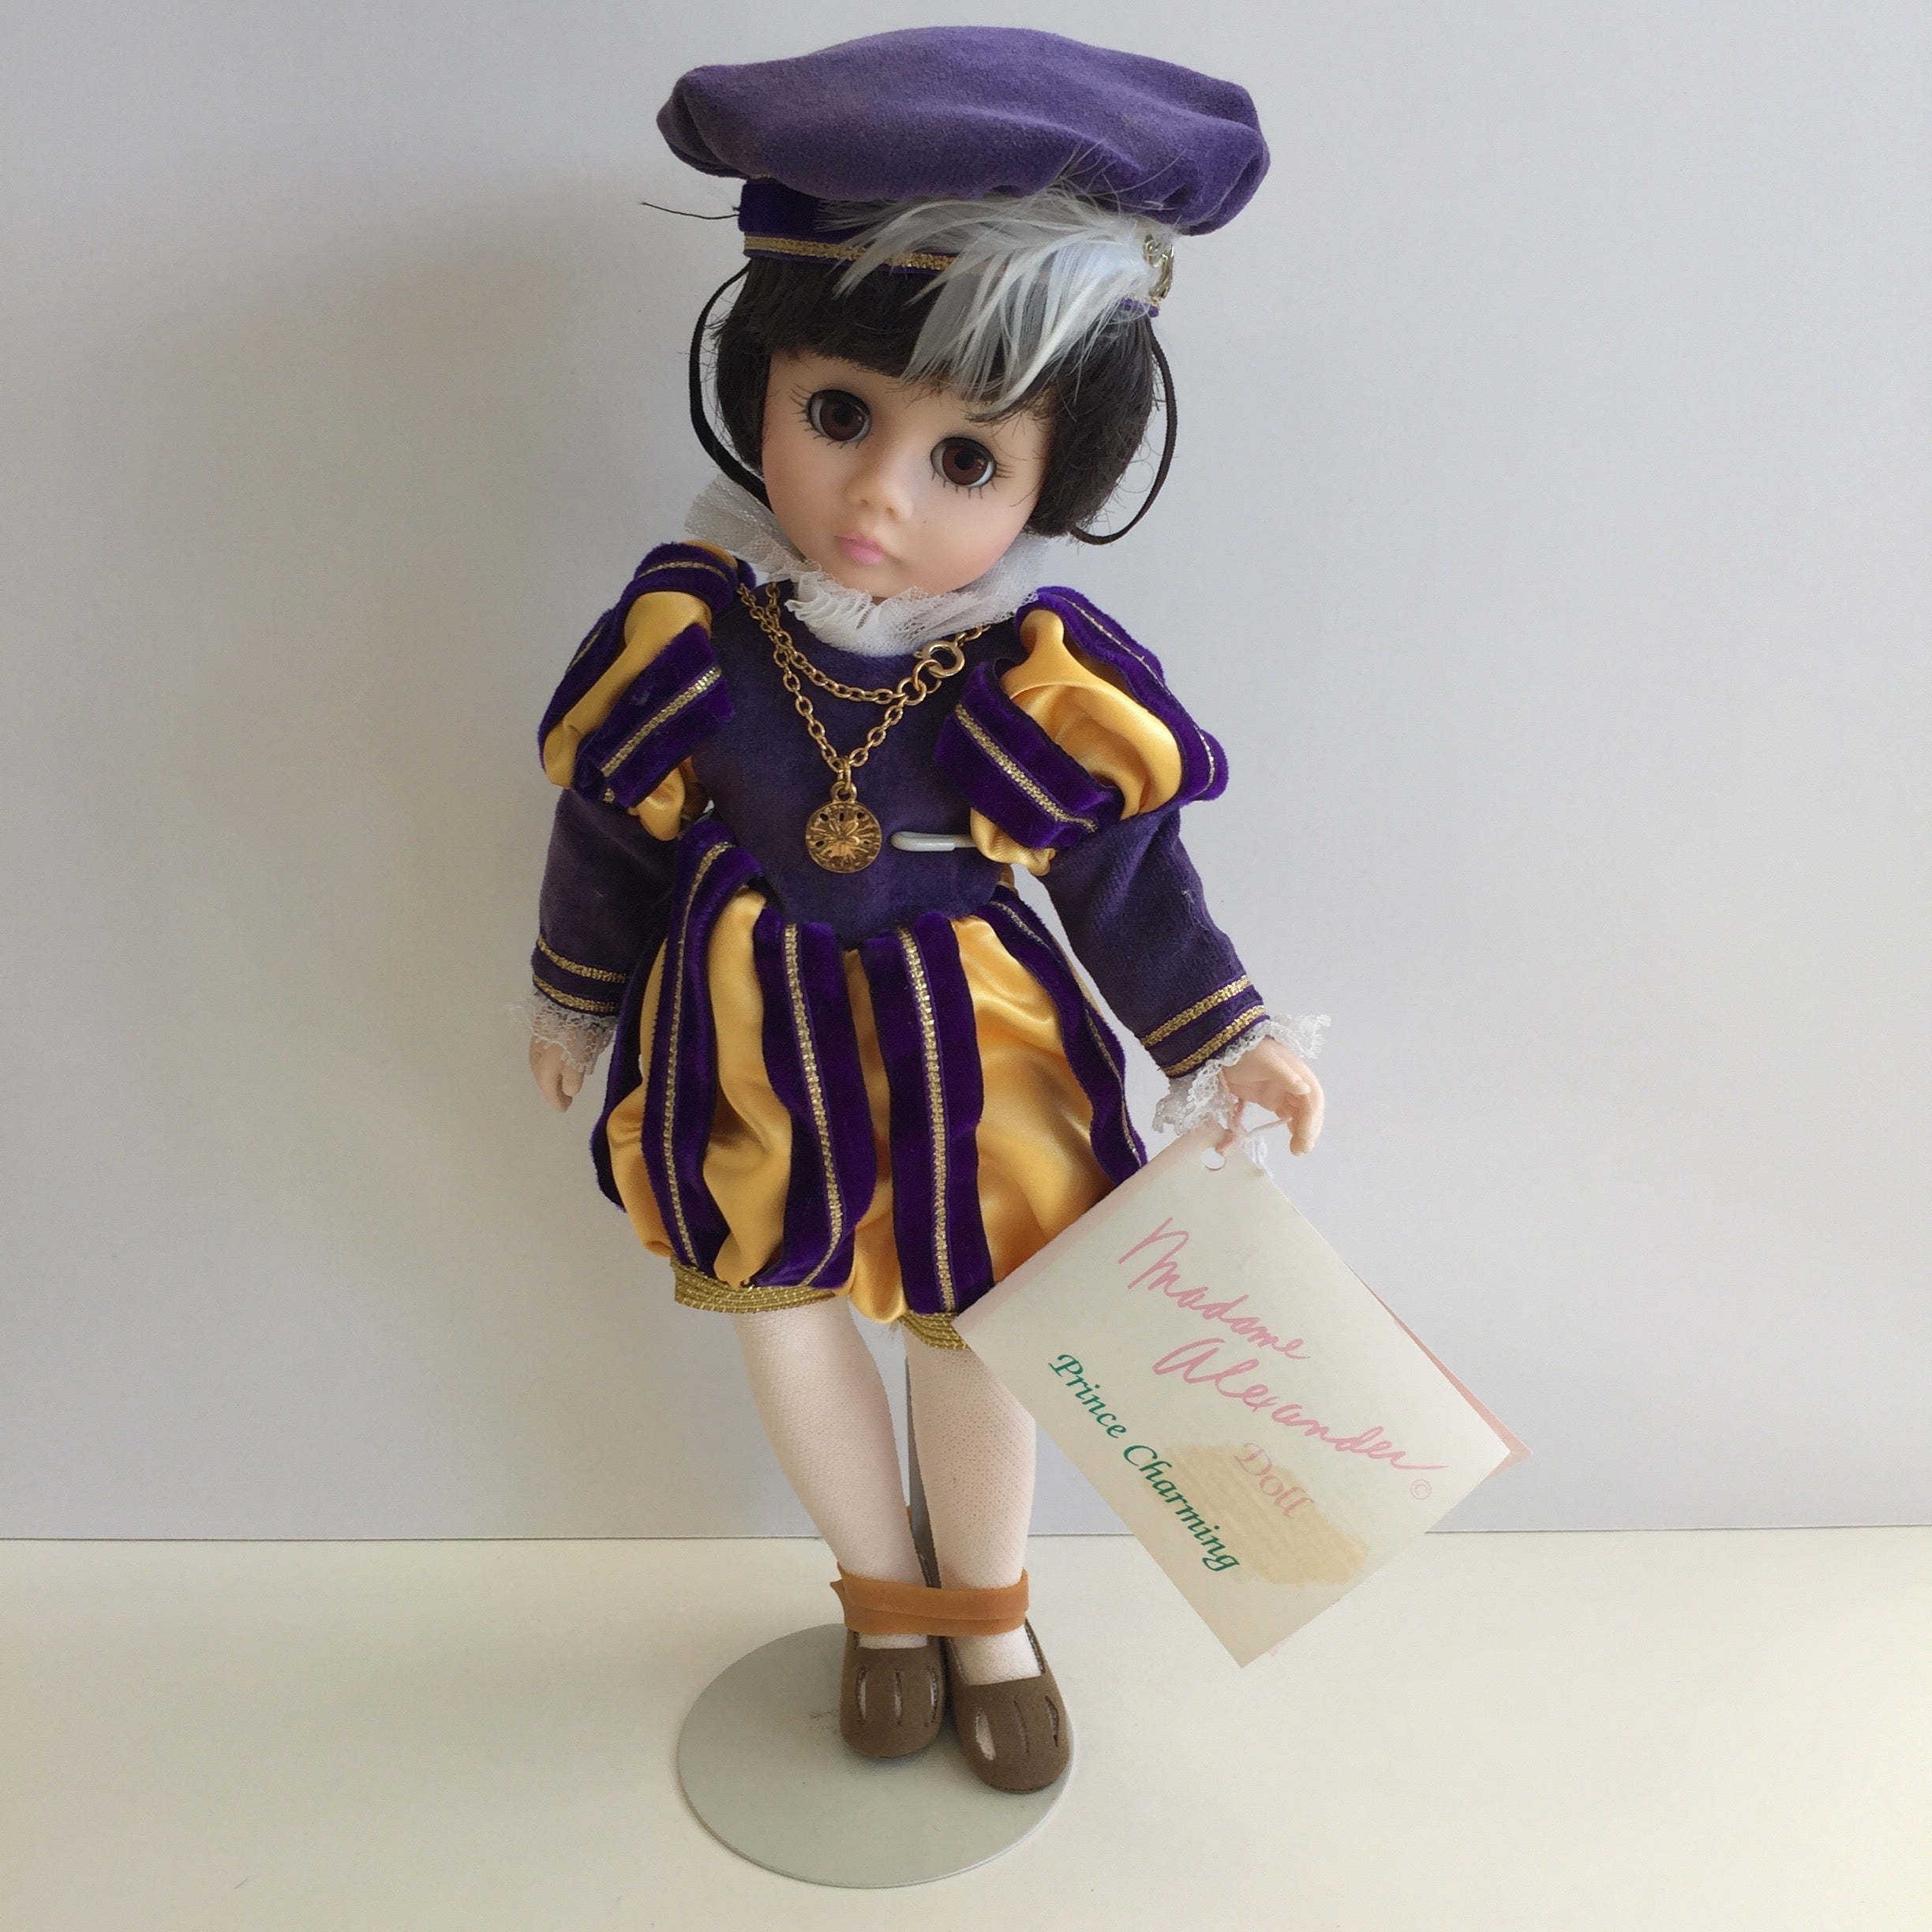 "Mint in box 1990 Madame Alexander 12"" PRINCE CHARMING Collectible Doll"